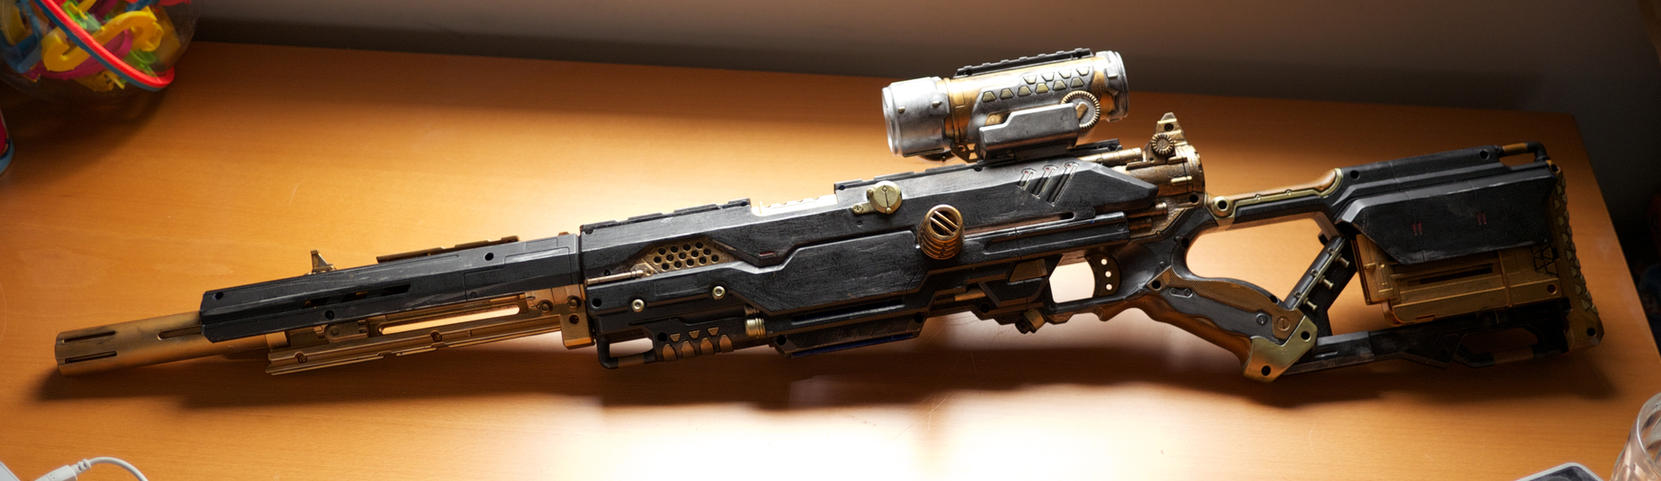 how to build steampunk sniper rifle